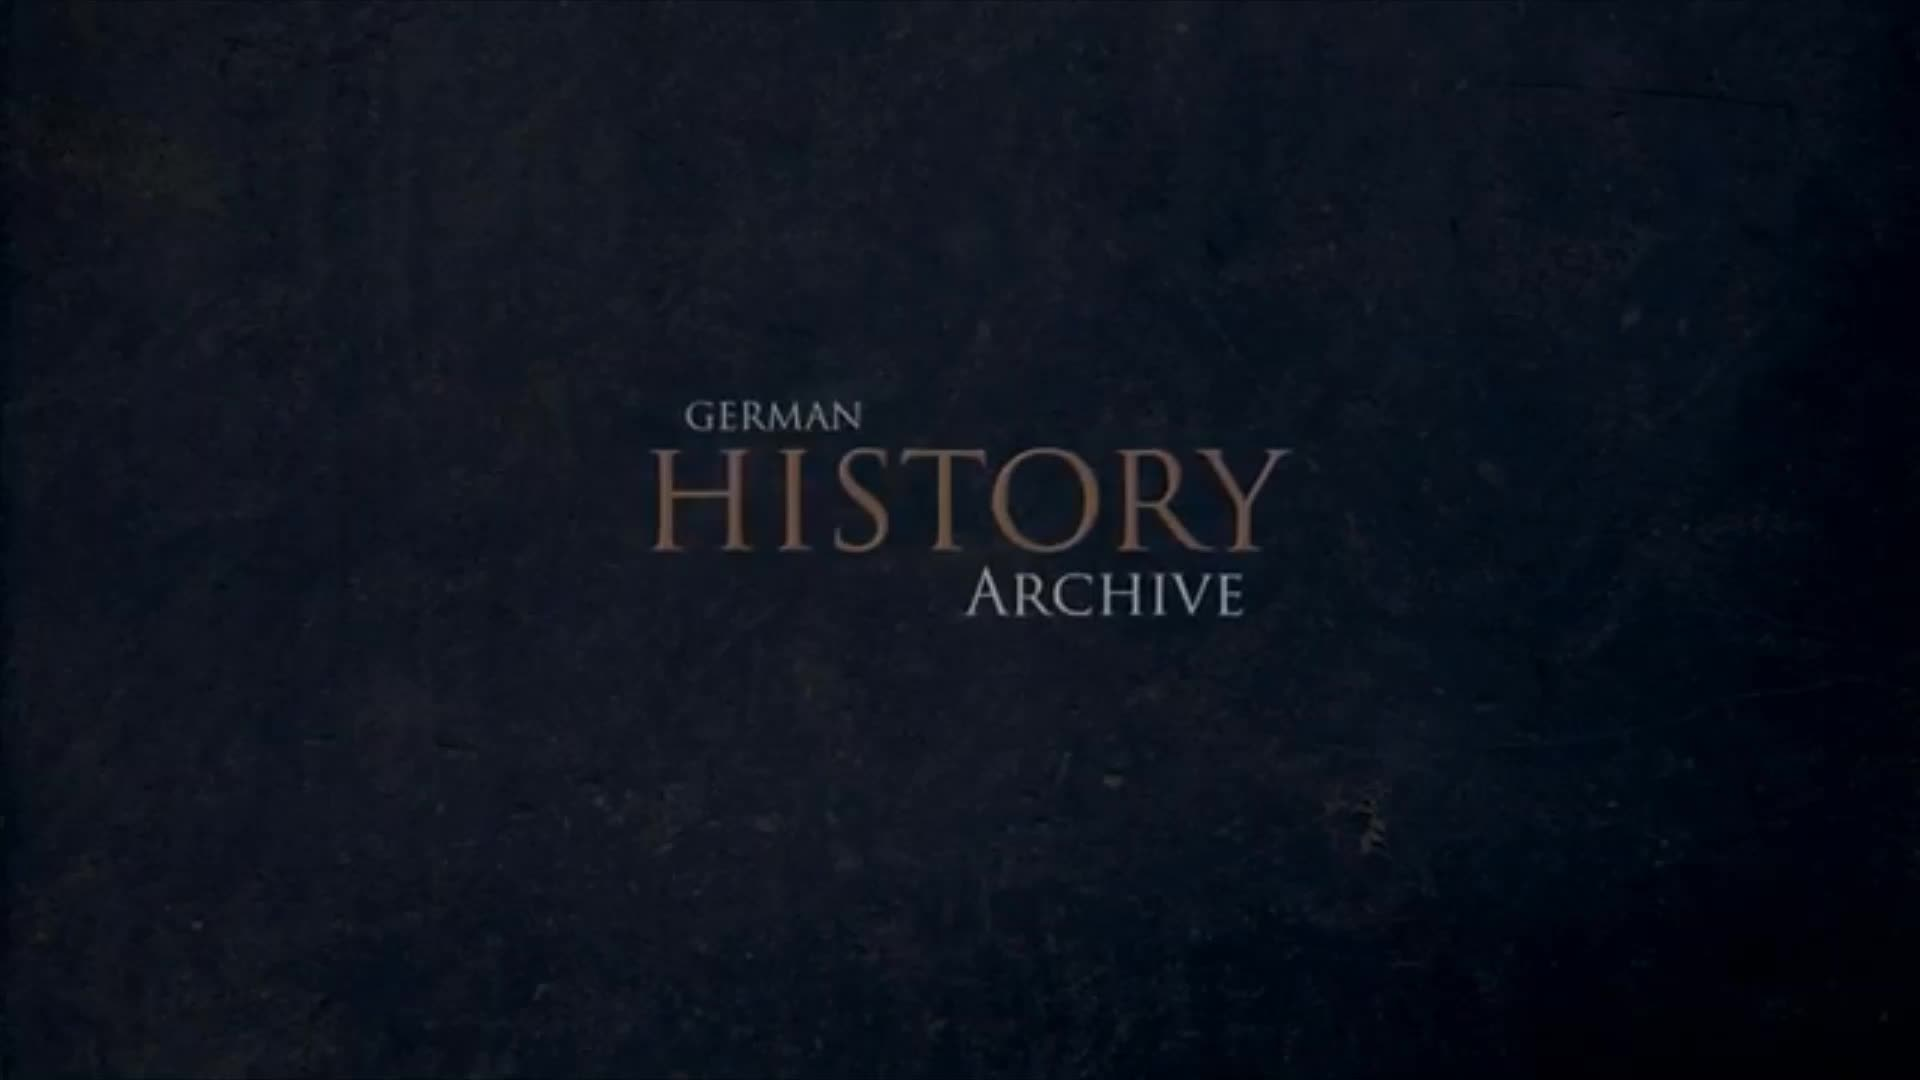 Axis forces on the Eastern front during the winters of 1941-1943 .